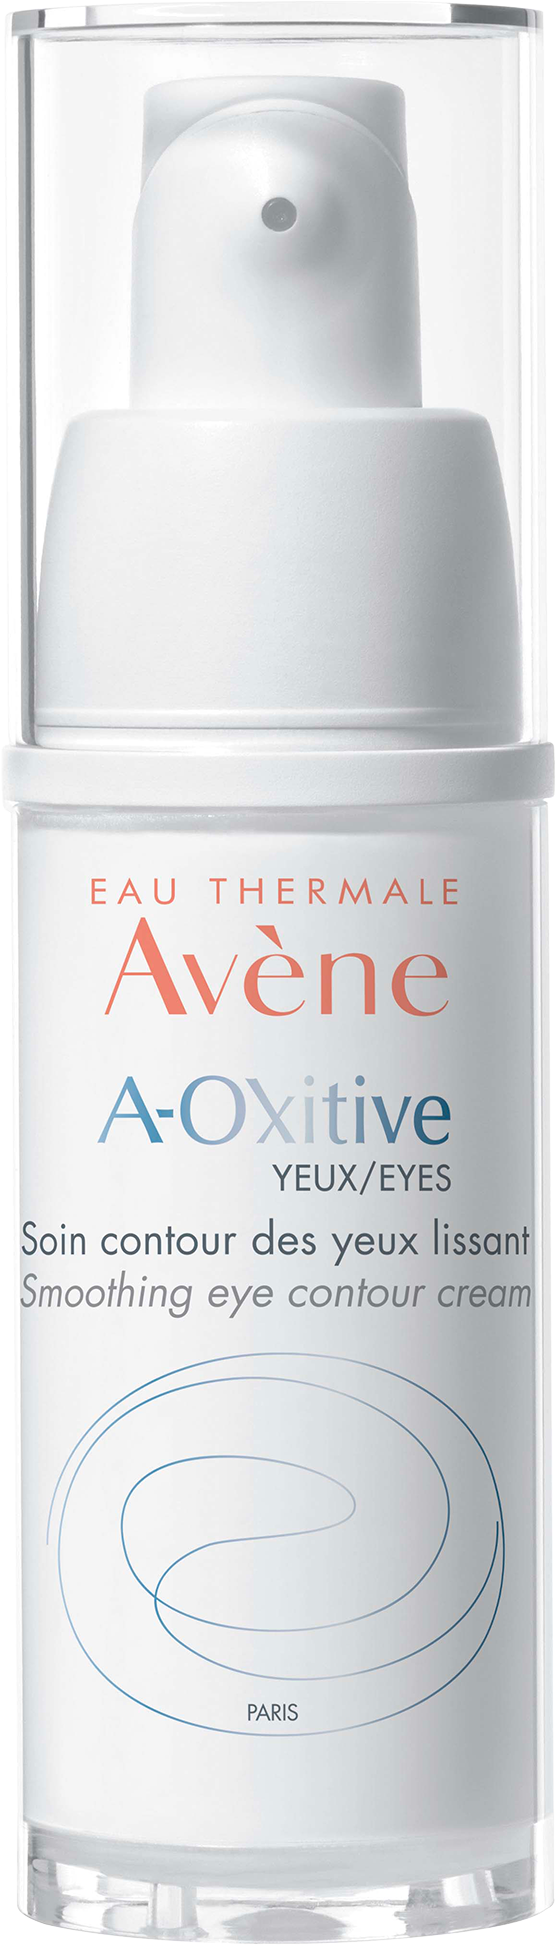 A-oxitive soothing eye contour